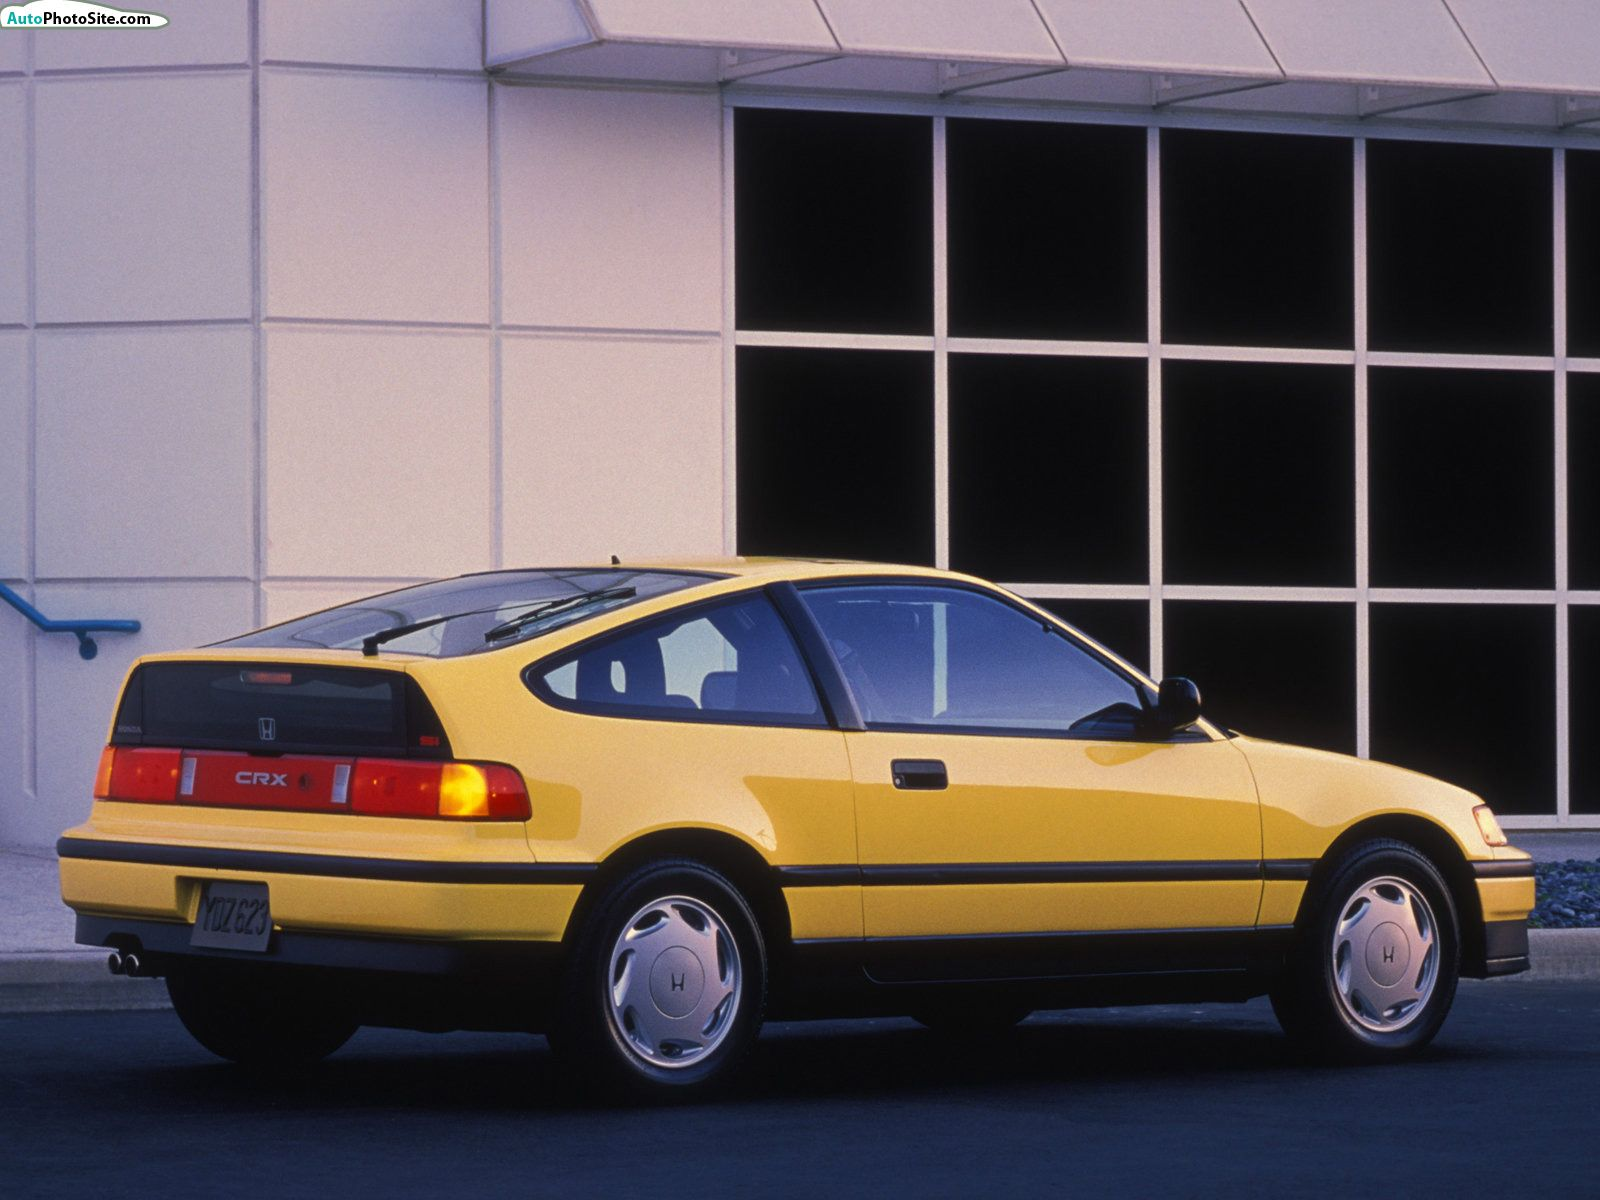 medium resolution of honda civic crx si 1988 review top 10 photo video and pictures